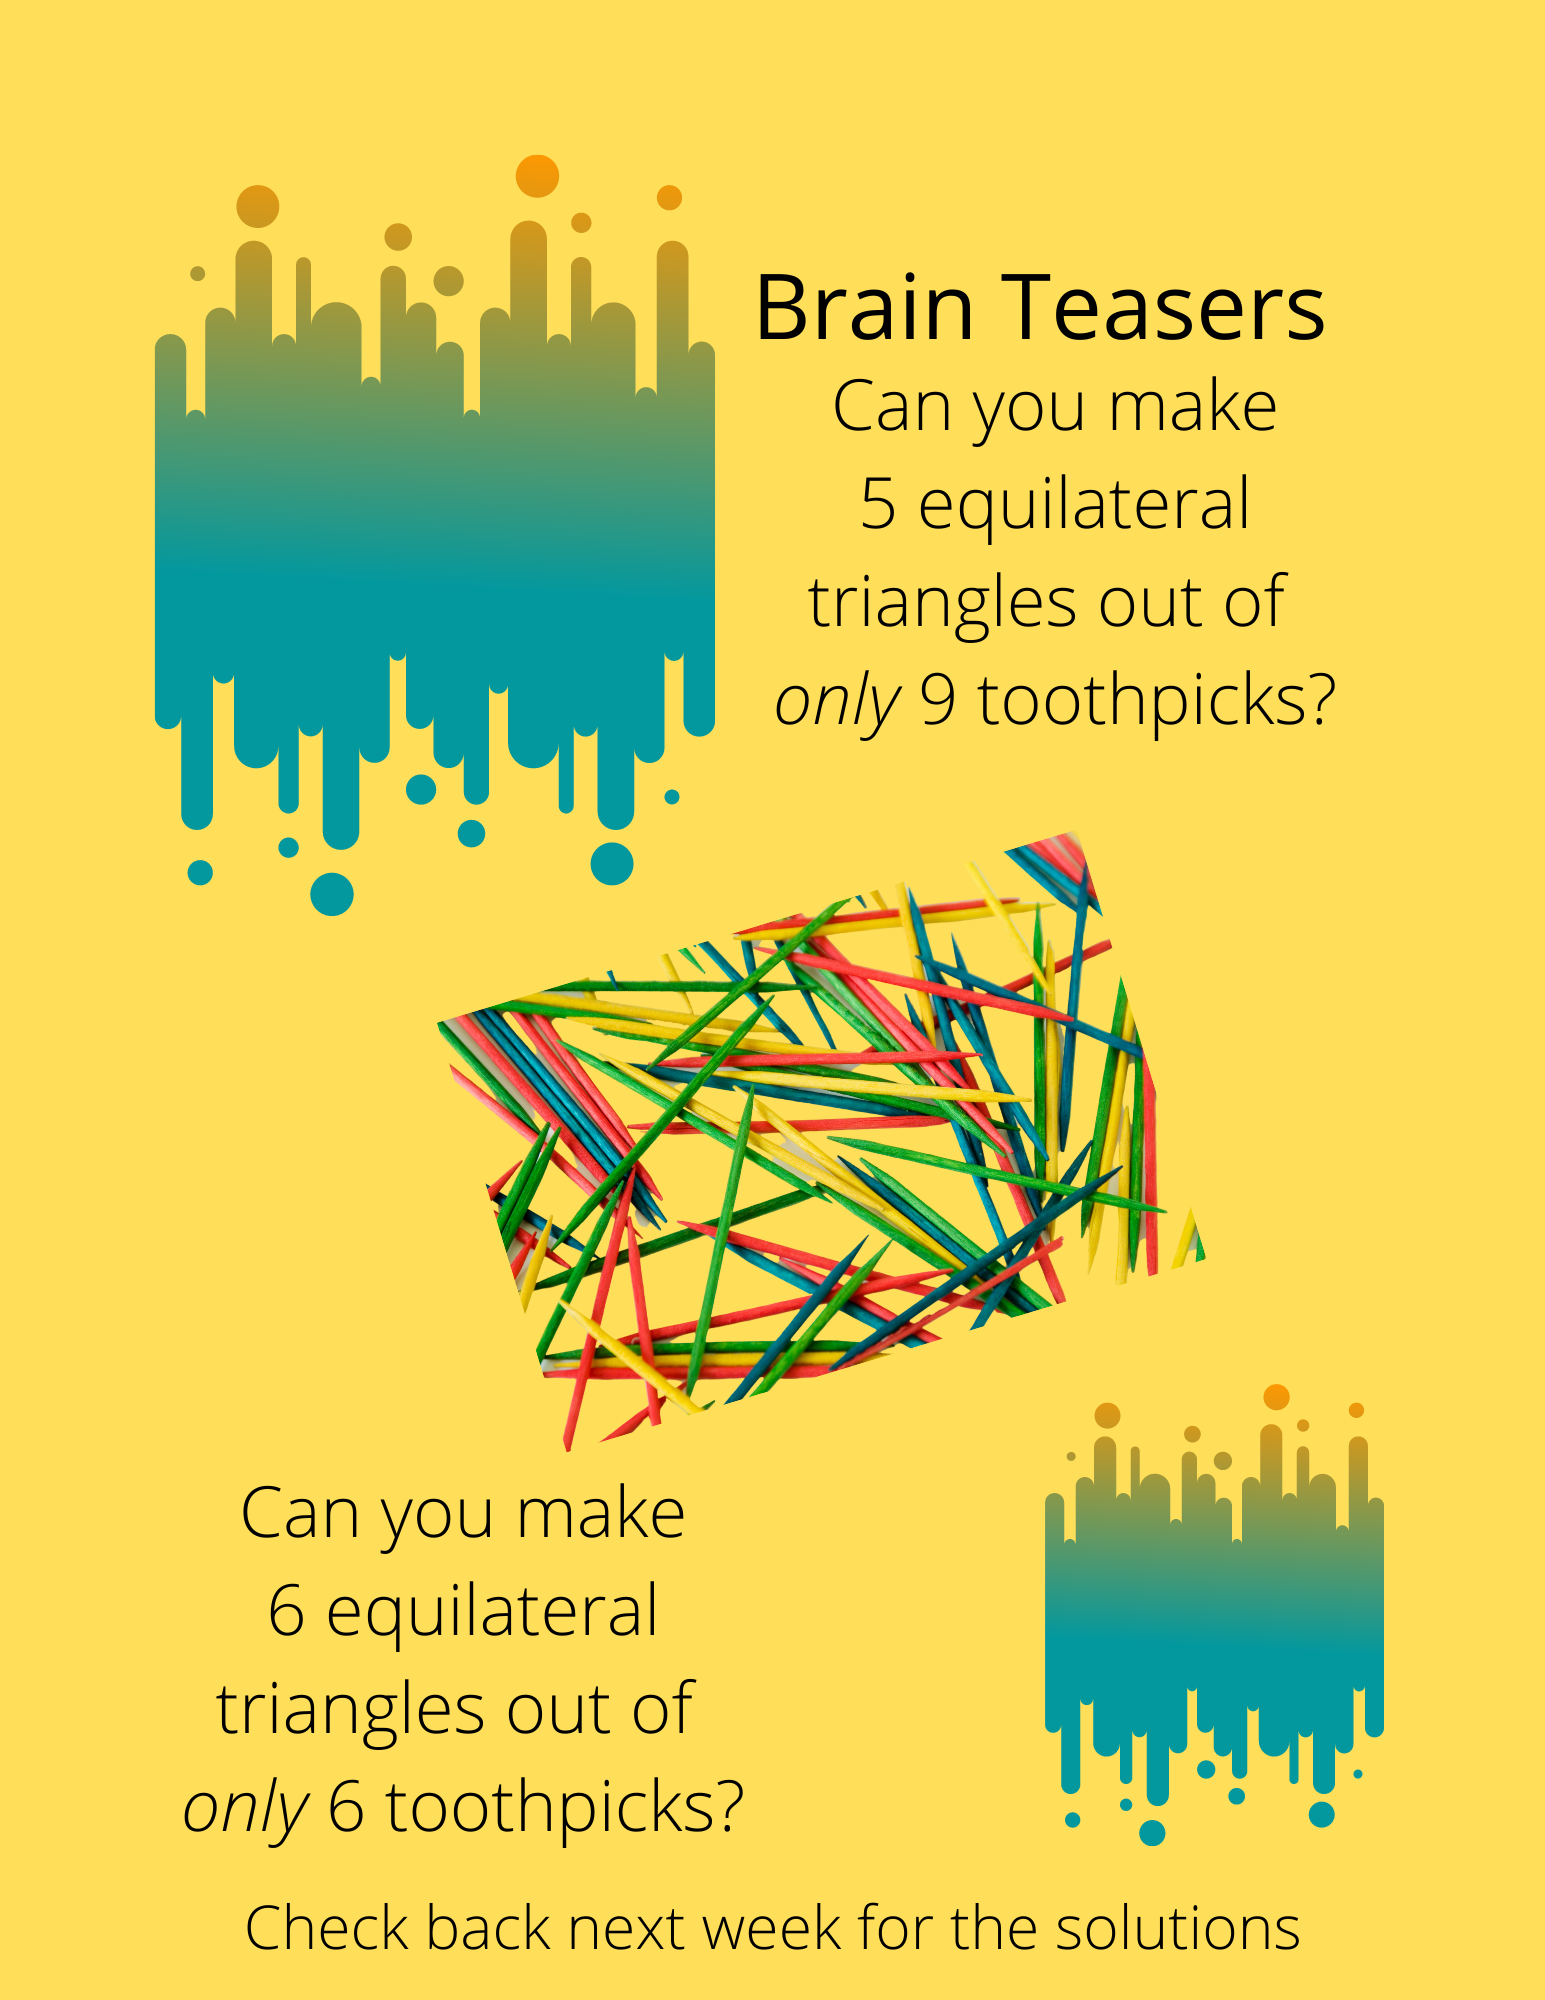 Brain Teaser Toothpick puzzles, 6 equilateral triangles with 6 toothpicks, 5 equilateral triangles with 9 toothpicks